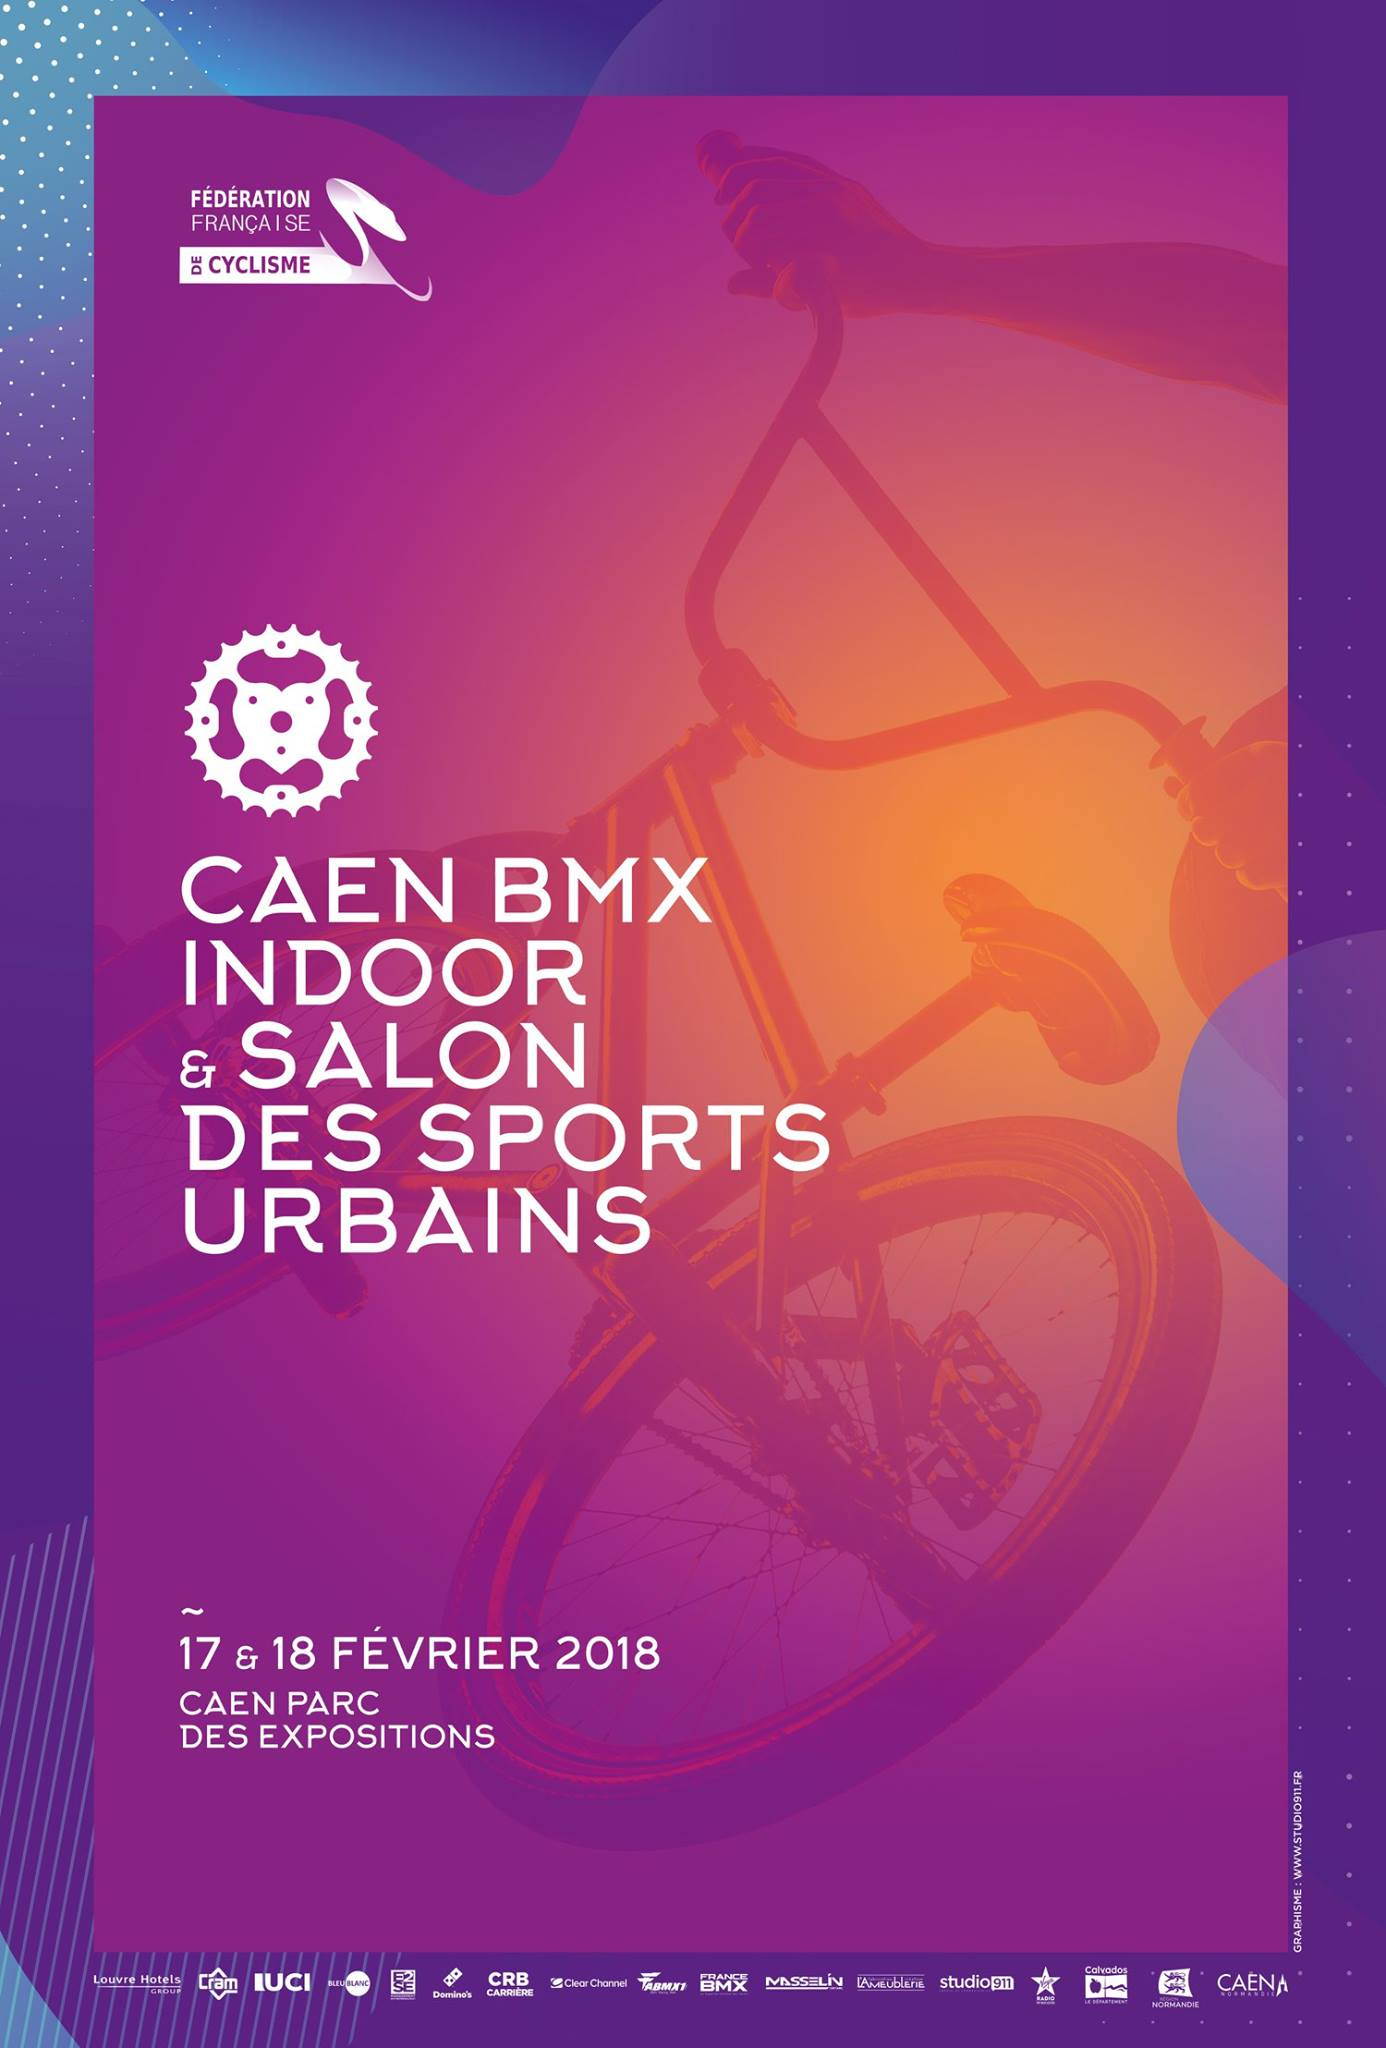 Salon Du Chiot Caen Caen Bmx Indoor Caen Event